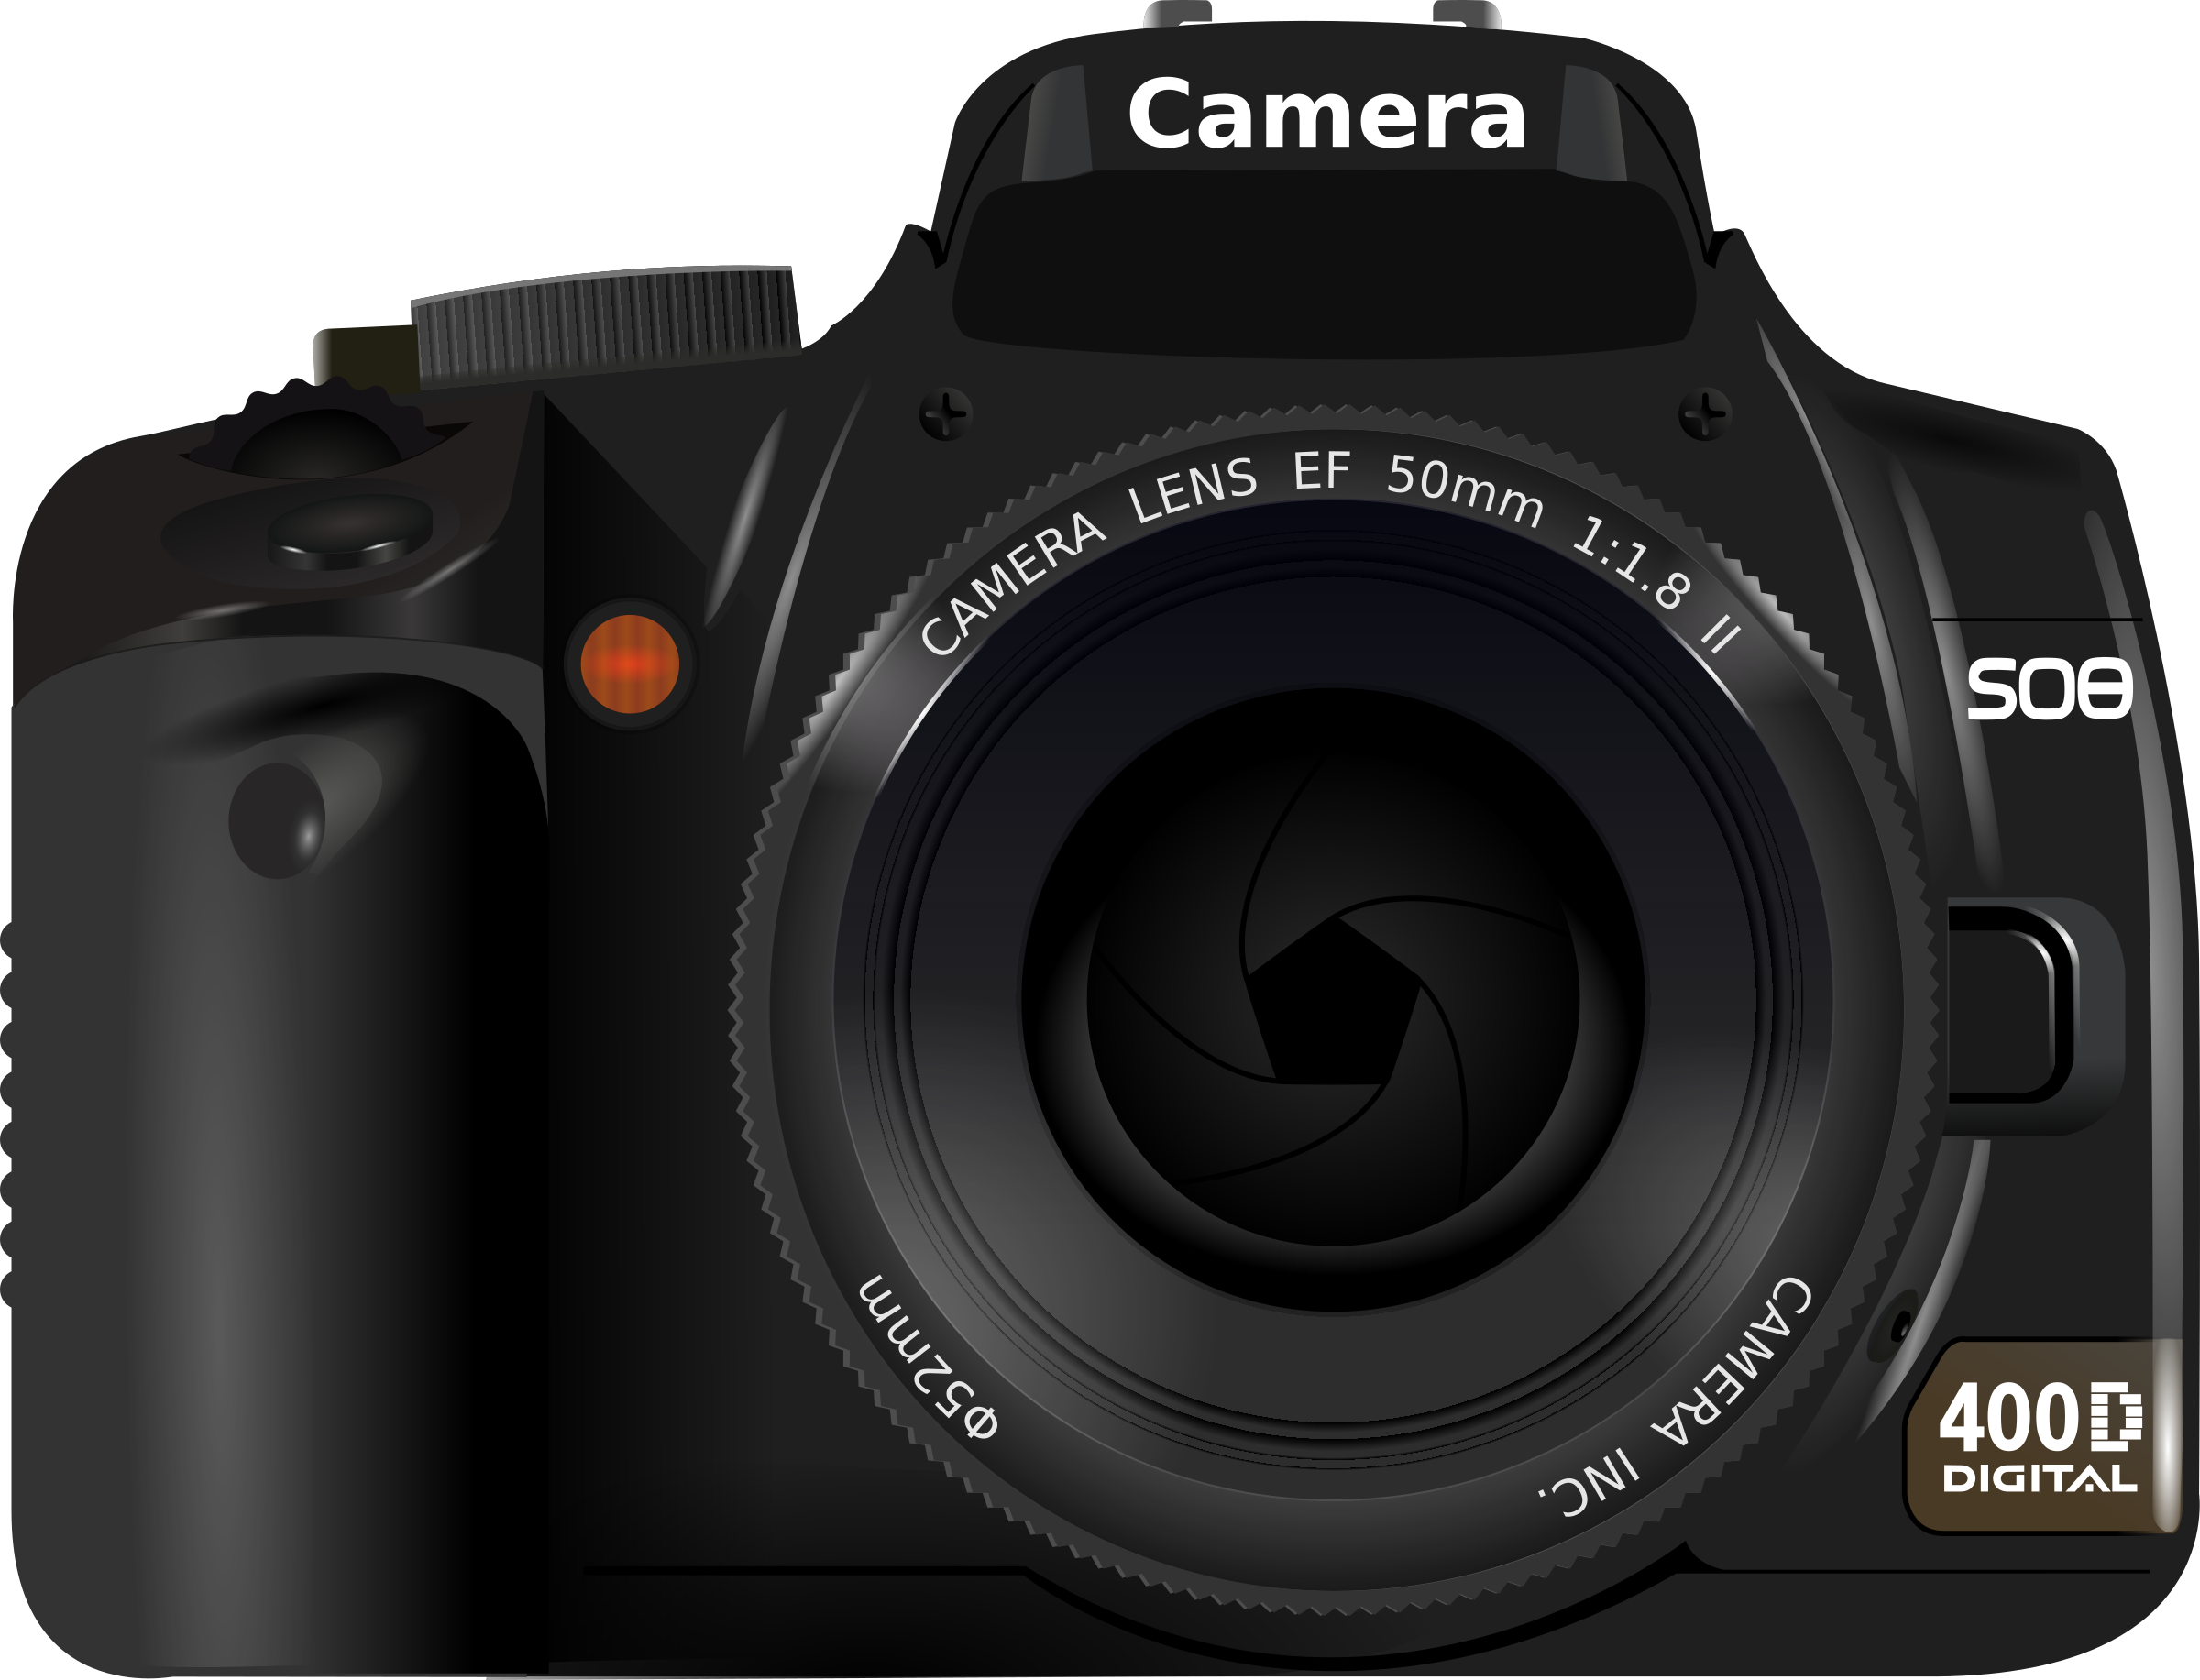 DSLR Camera by flomar